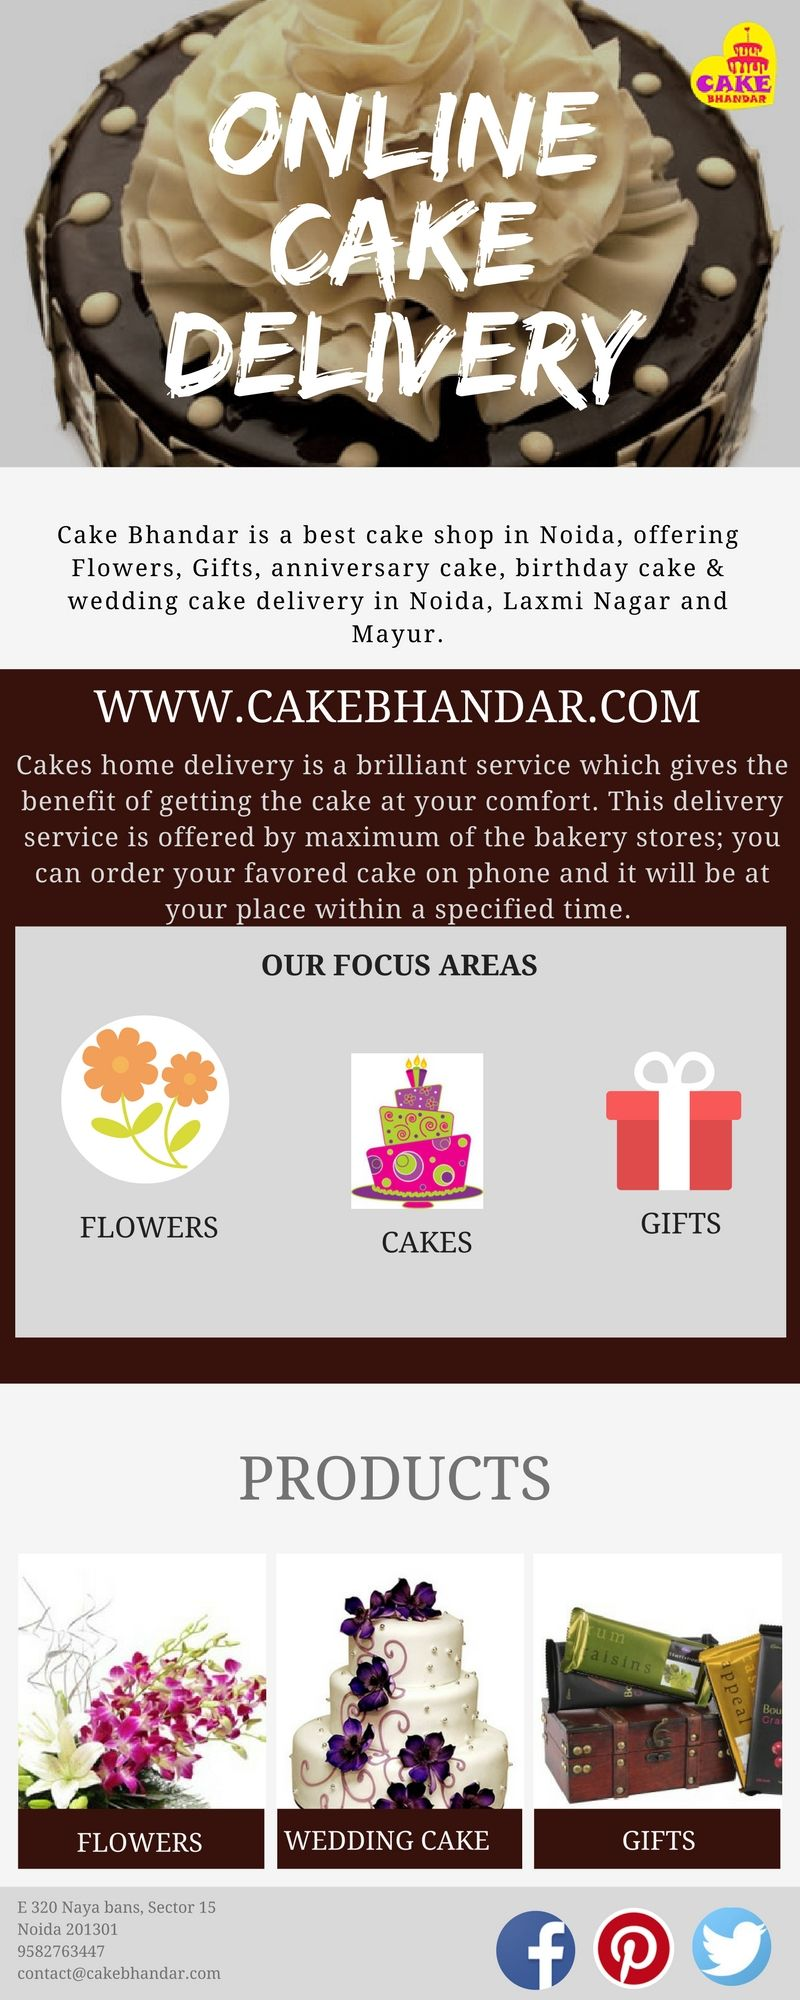 Cake Bhandar Is A Best Cake Shop In Noida They Are Offering Flowers